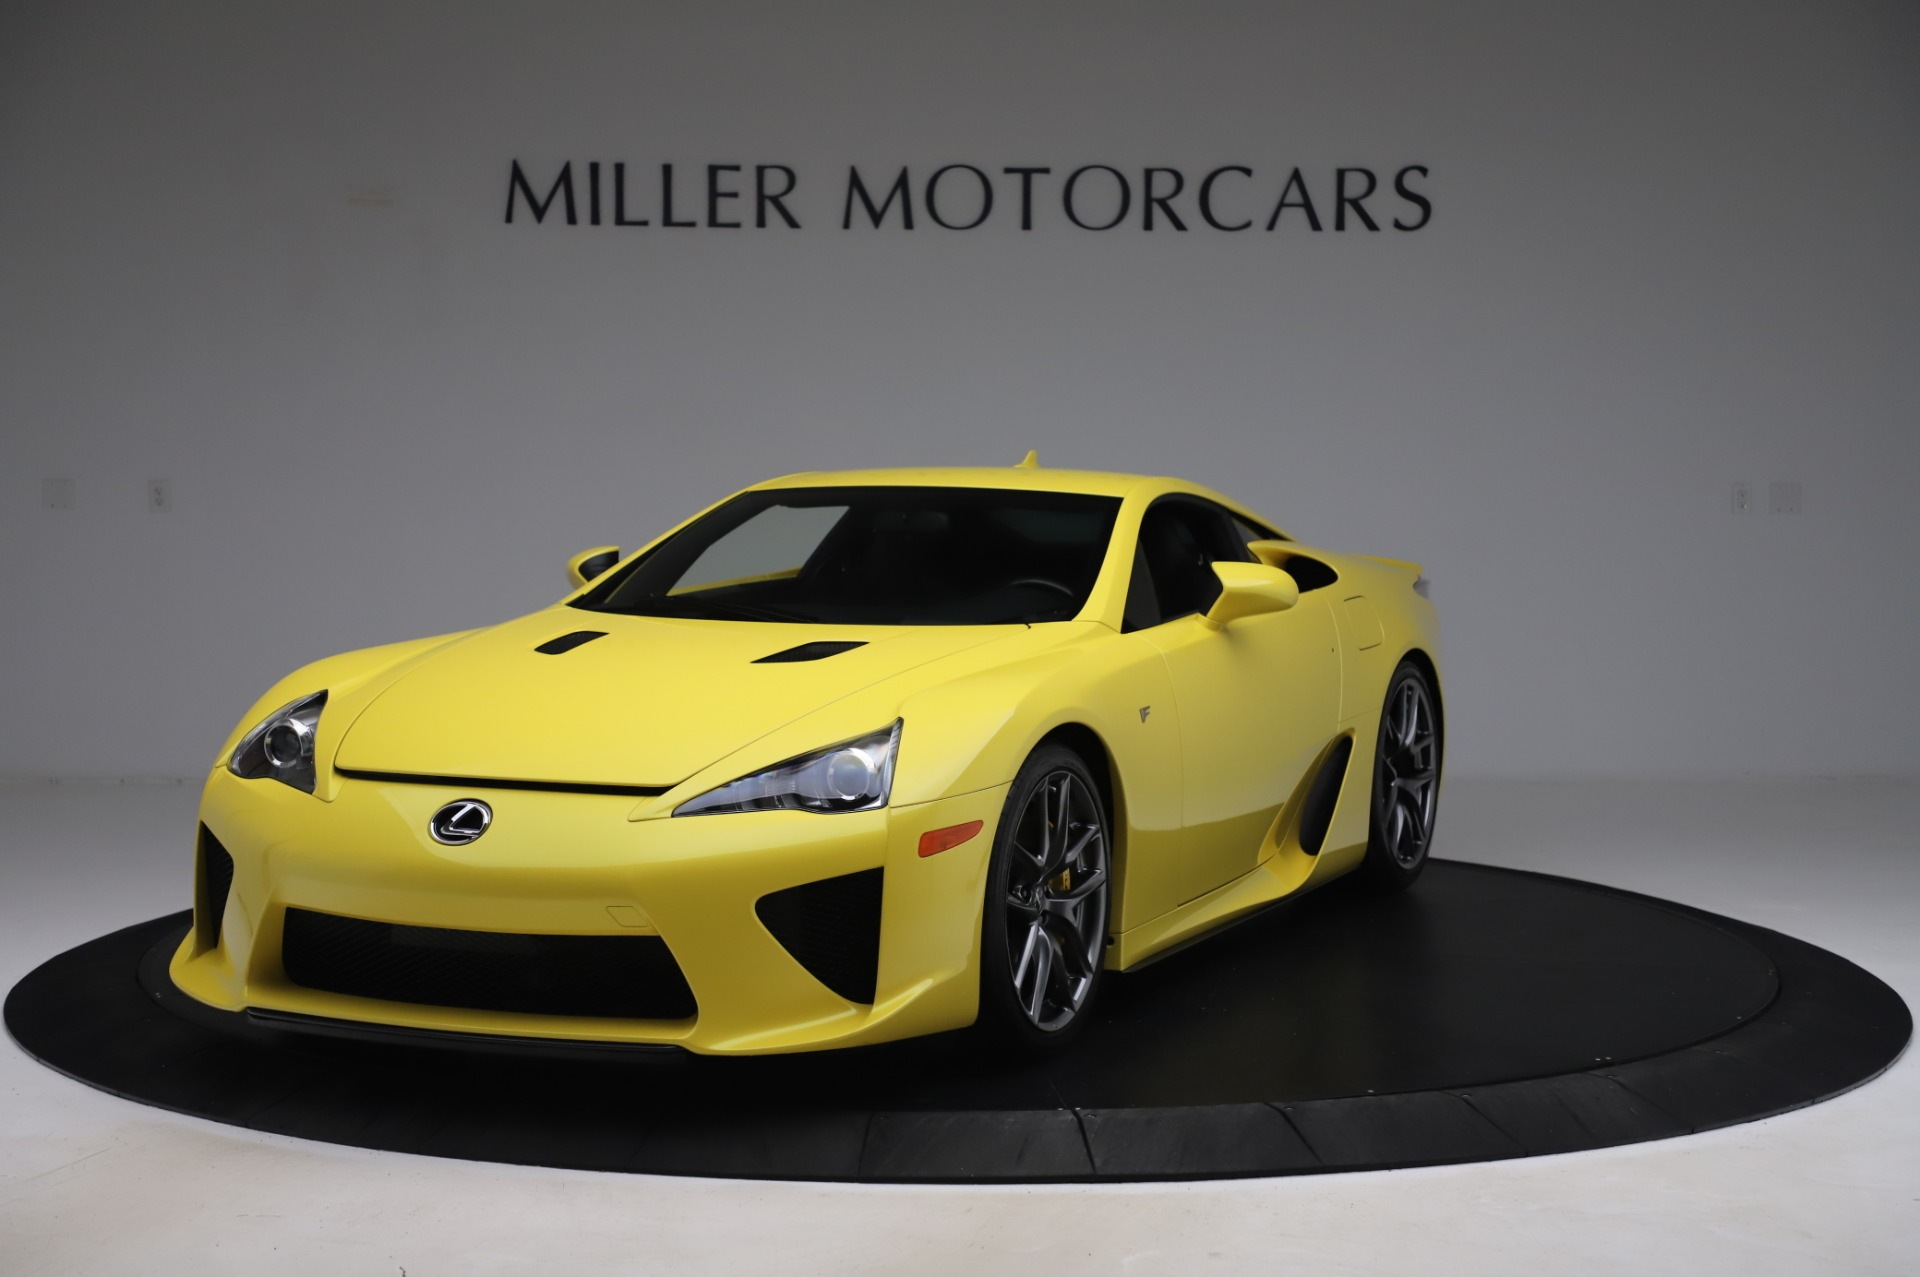 Used 2012 Lexus LFA for sale $509,900 at Alfa Romeo of Greenwich in Greenwich CT 06830 1